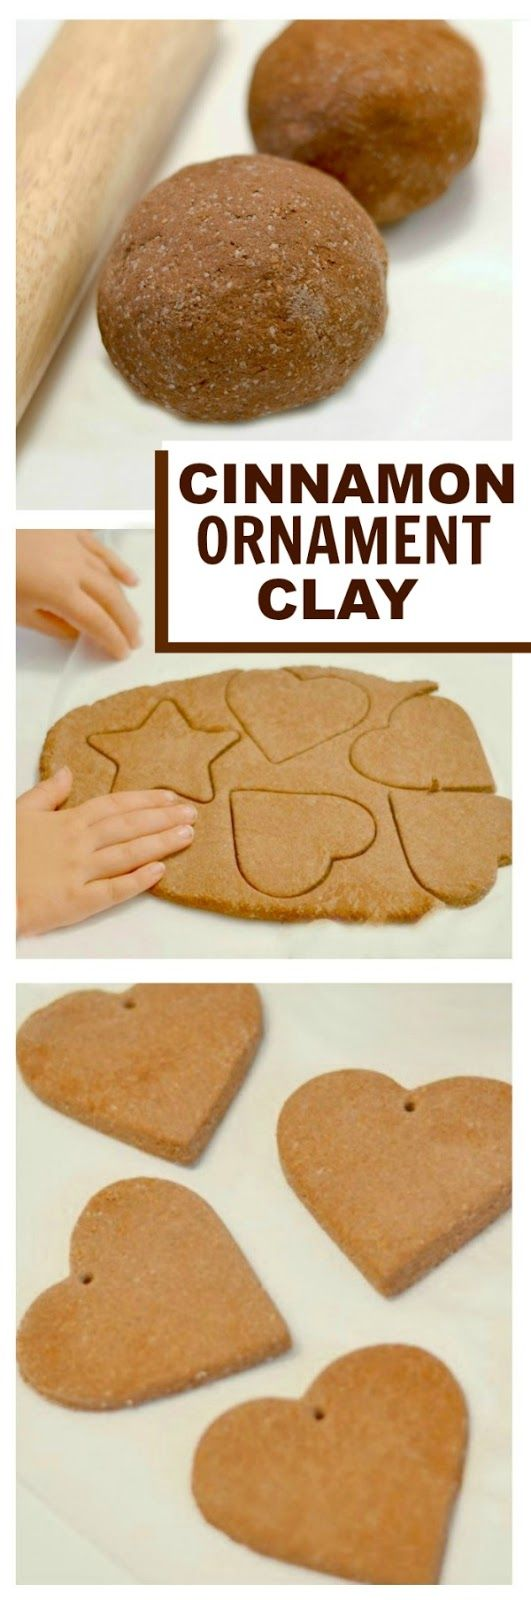 NO COOK CINNAMON ORNAMENT CLAY- takes 1 minute to make & smells AMAZING!: